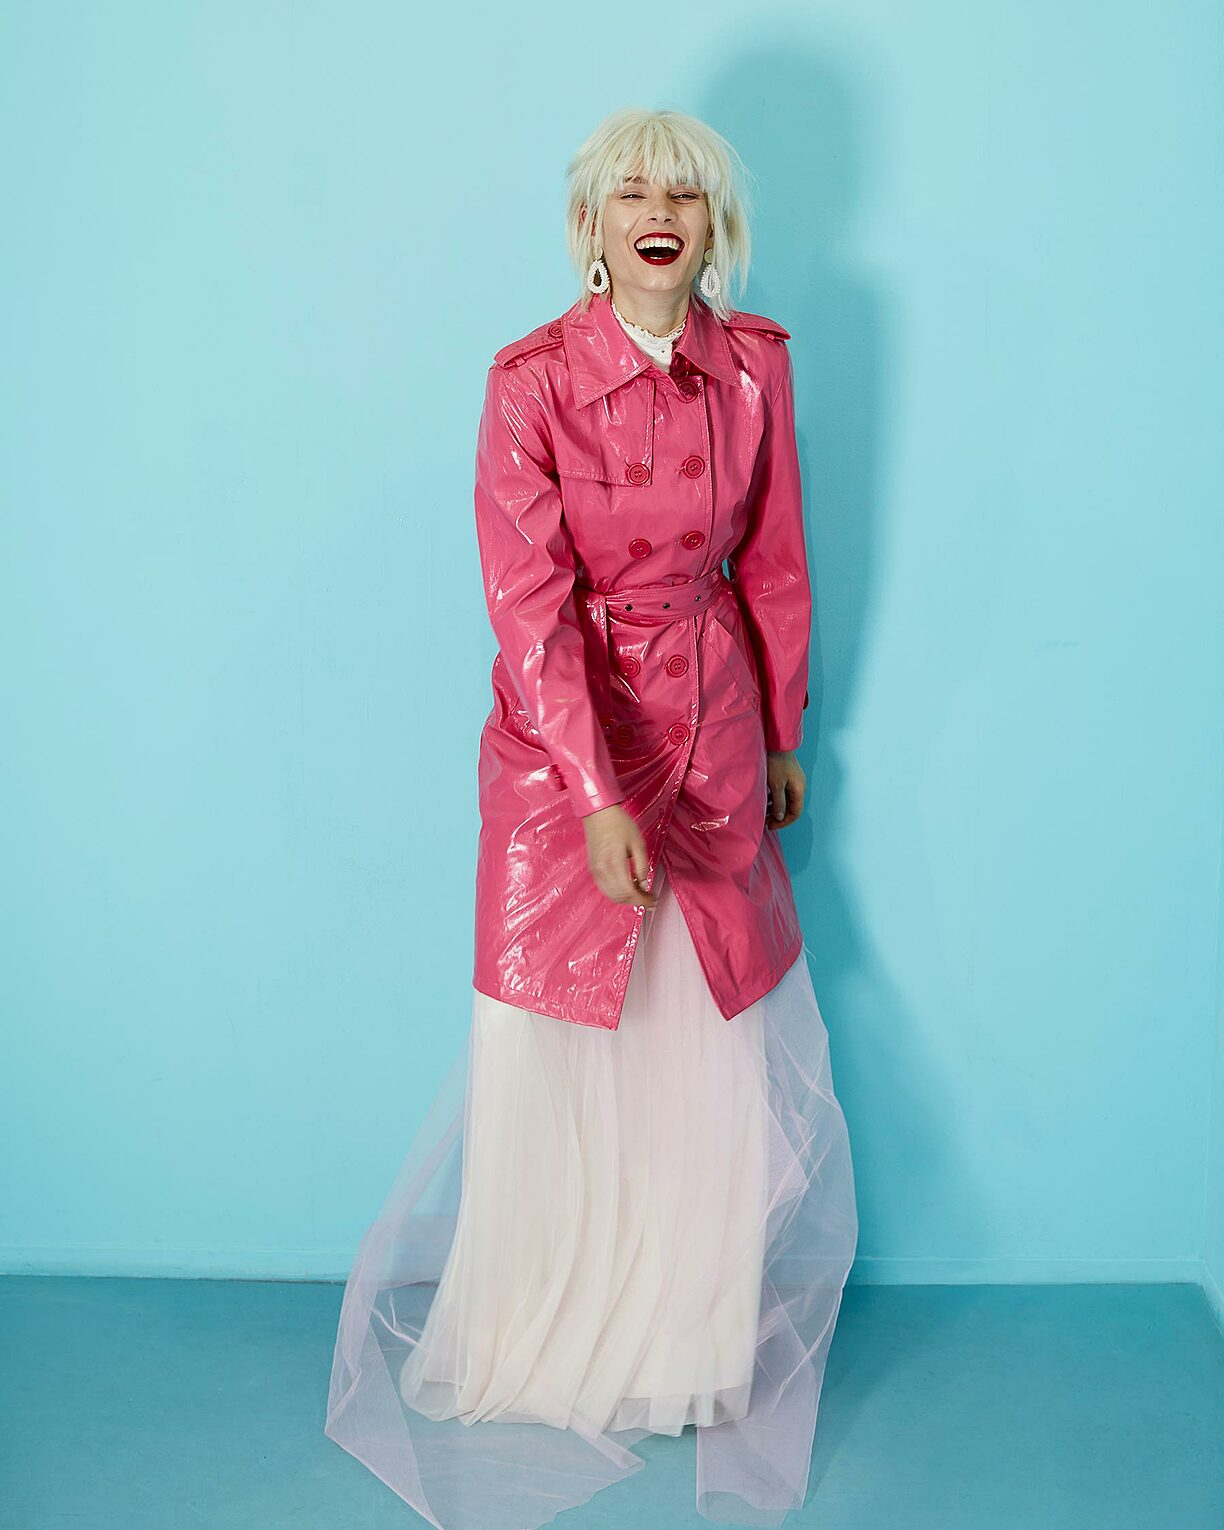 A model with blonde wings in a pink trench coat. She wears under the coat a pastel rosy dress and laughs into the camera